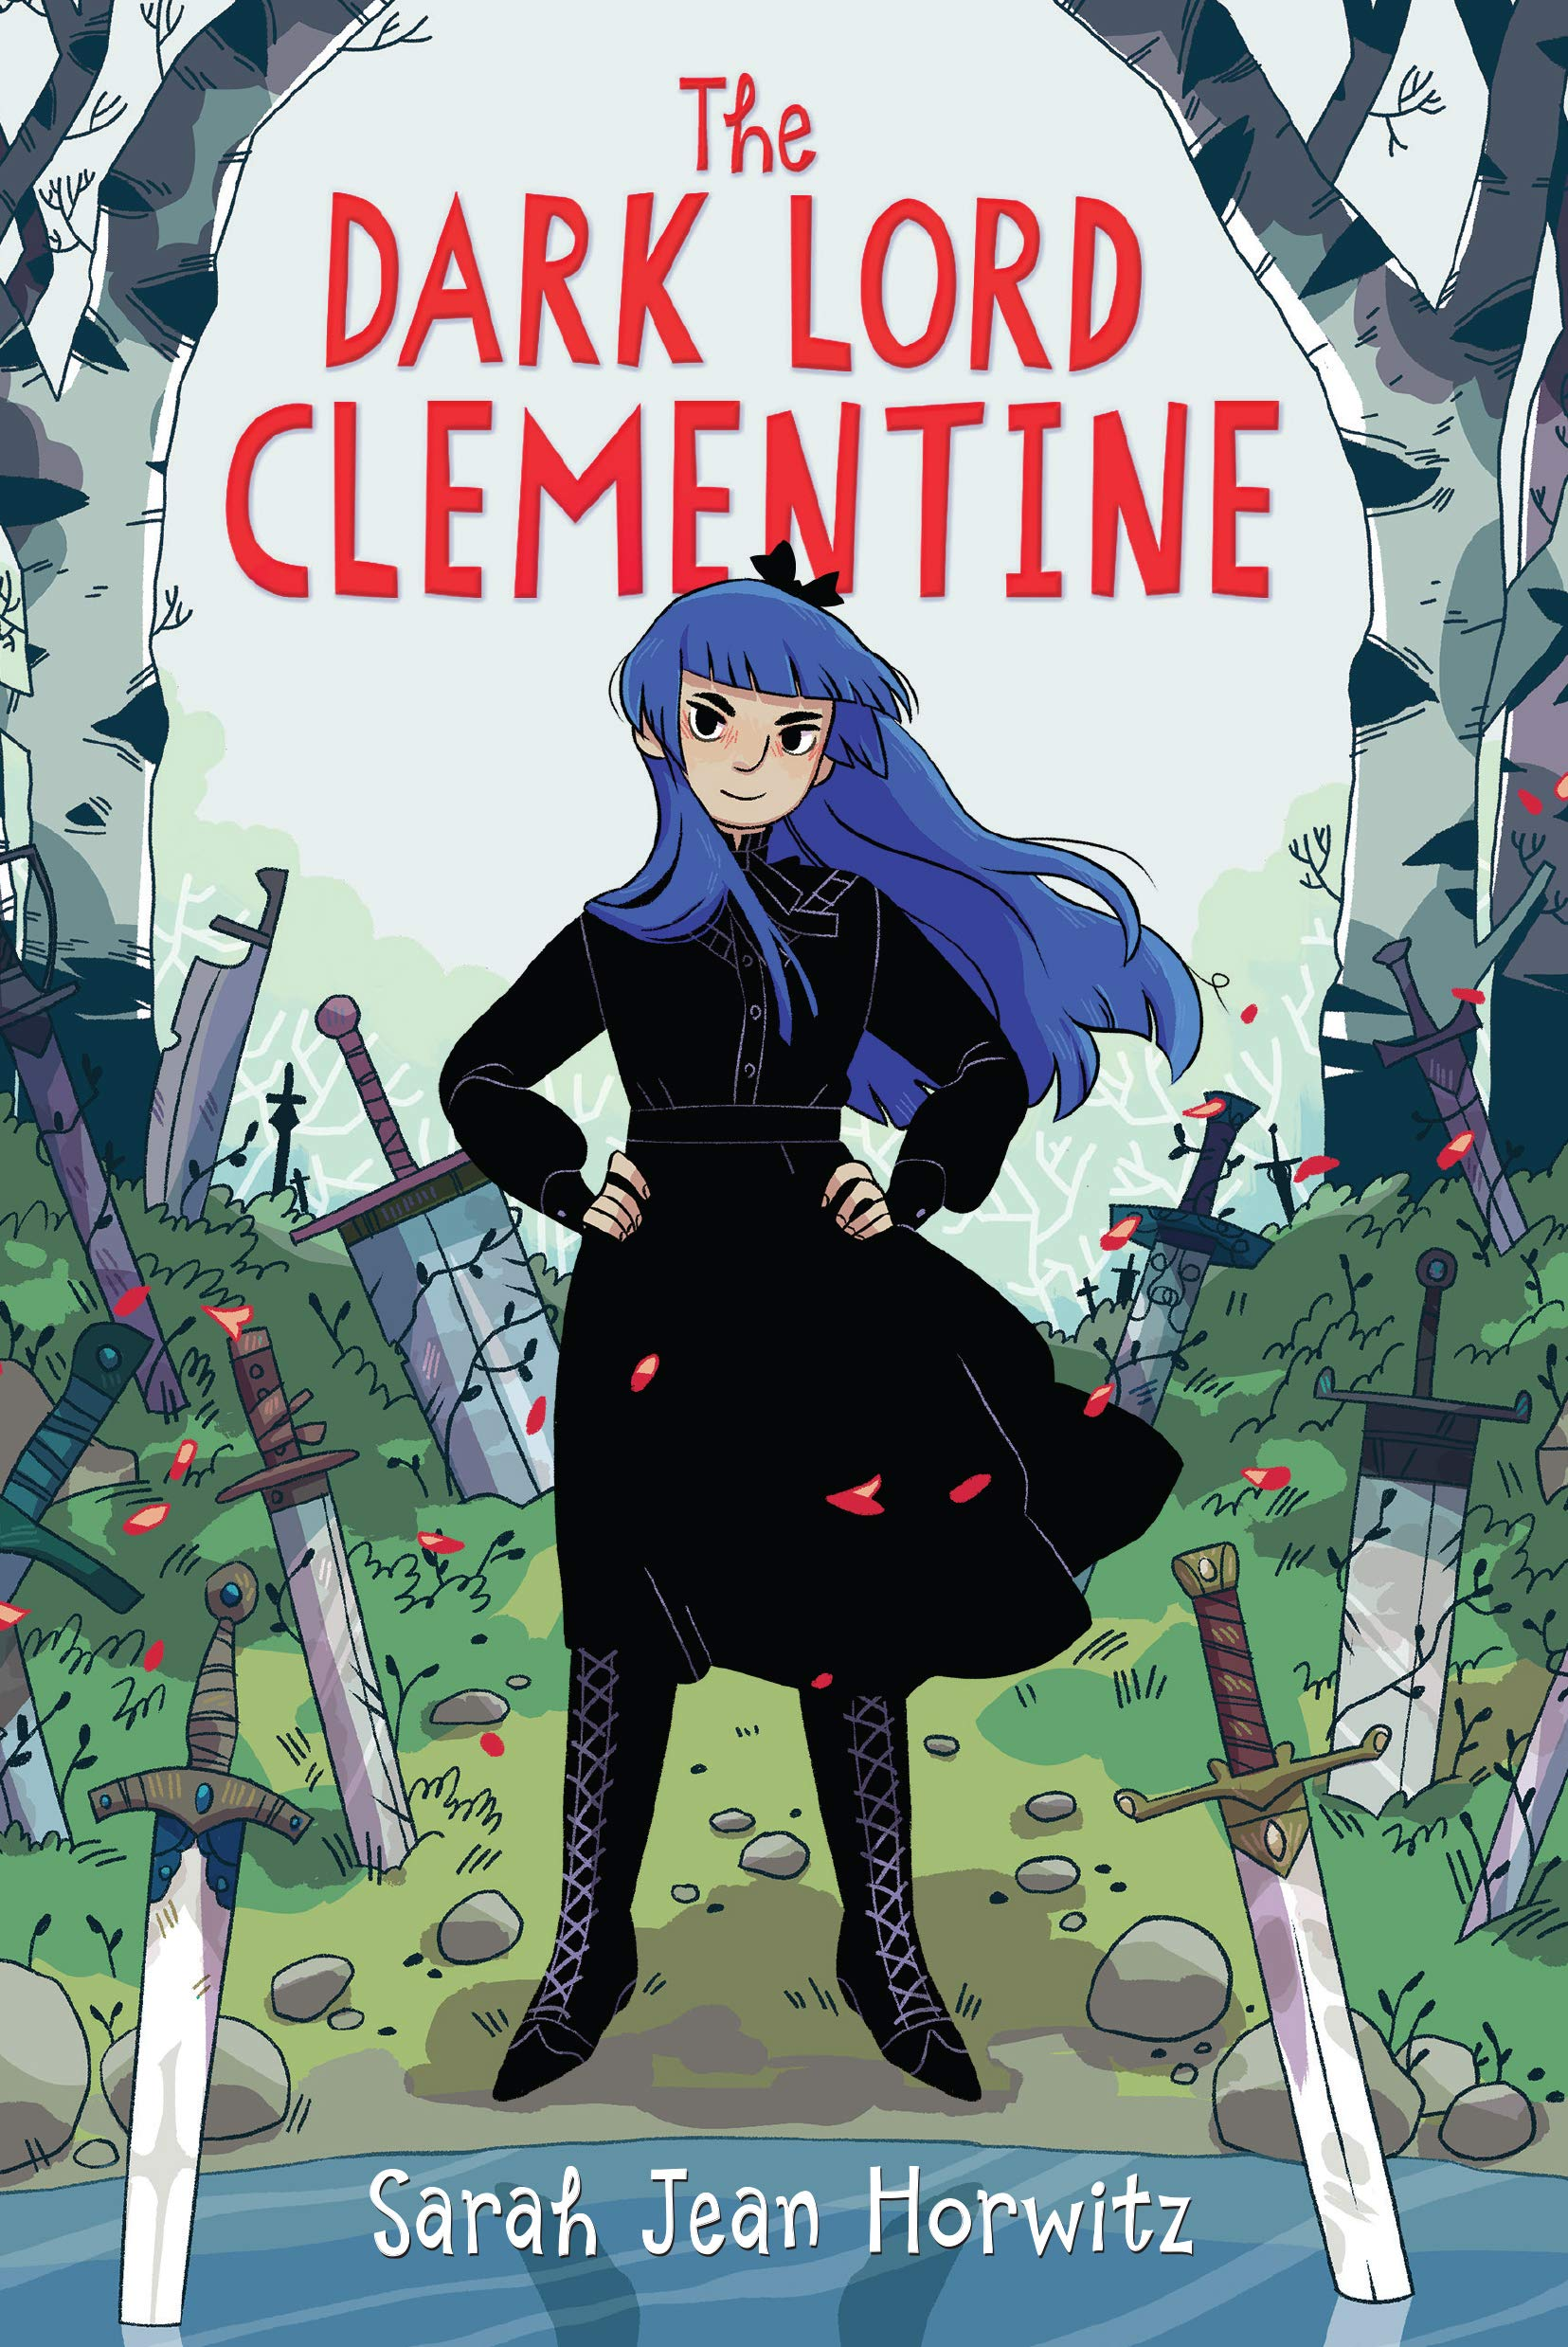 Book cover for The Dark Lord Clementine, showing a young girl with purple hair in a black dress. Swords stick up from the surrounding ground.